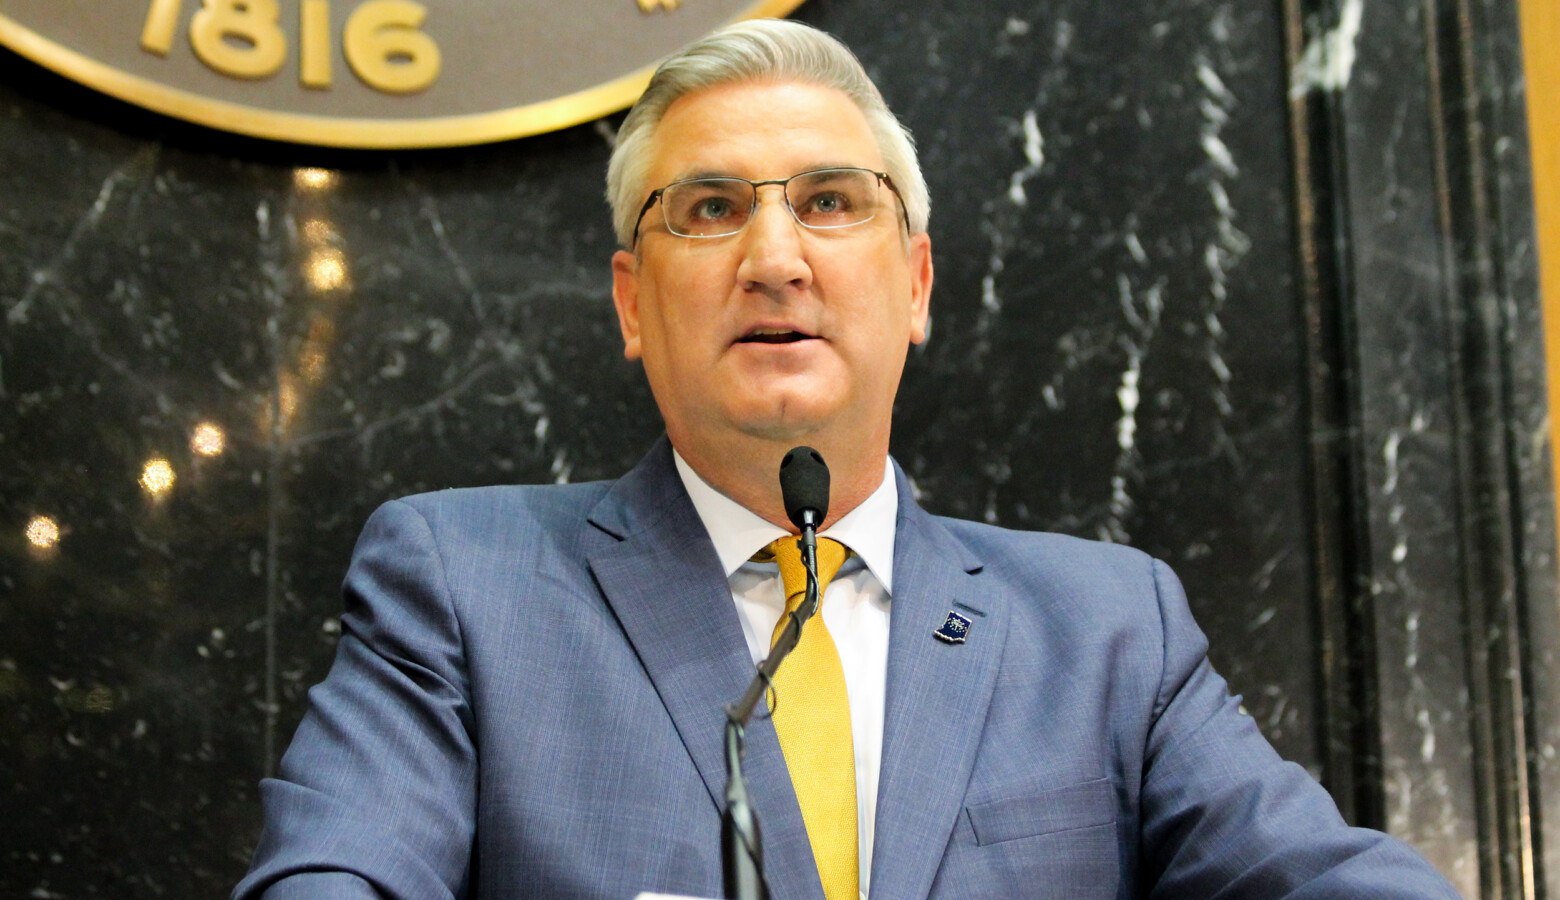 Gov. Eric Holcomb speaks at his third State of the State address. He's expected to speak Monday on the latest developments in slowing the spread of COVID-19. (Lauren Chapman/IPB News)